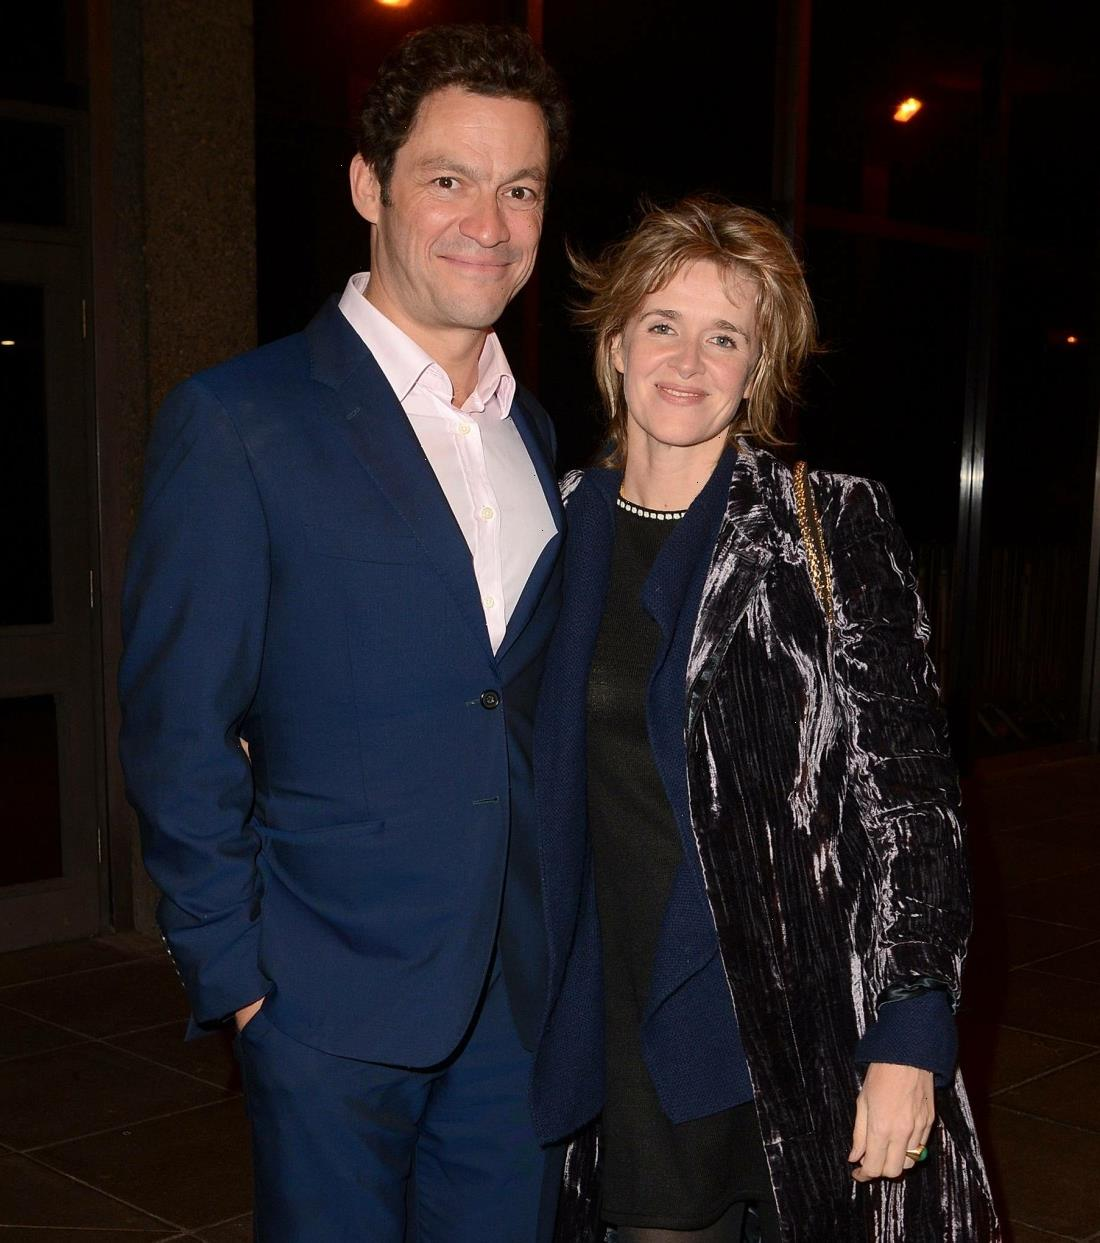 Dominic West & Catherine FitzGerald have reconciled but he has to follow 'strict rules'